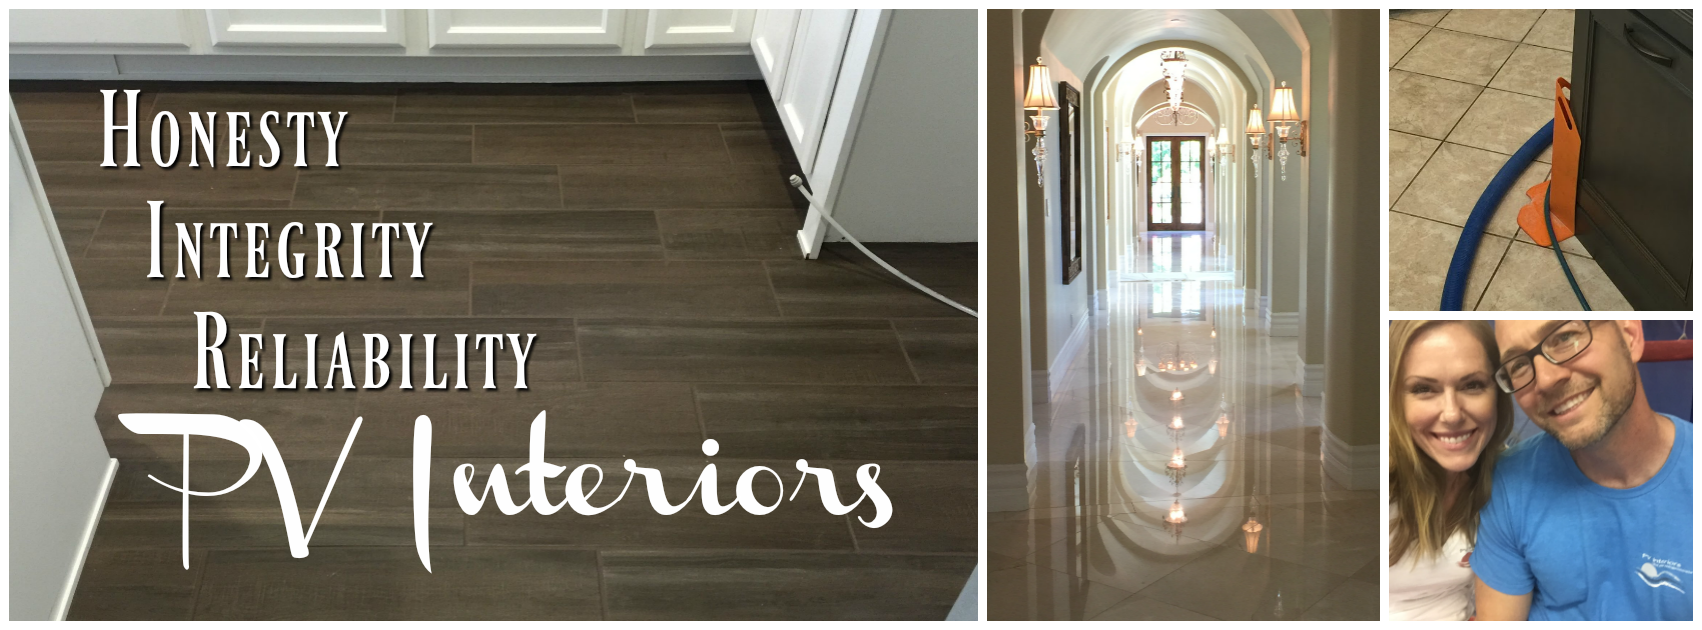 Tile Cleaning Pv Interiors